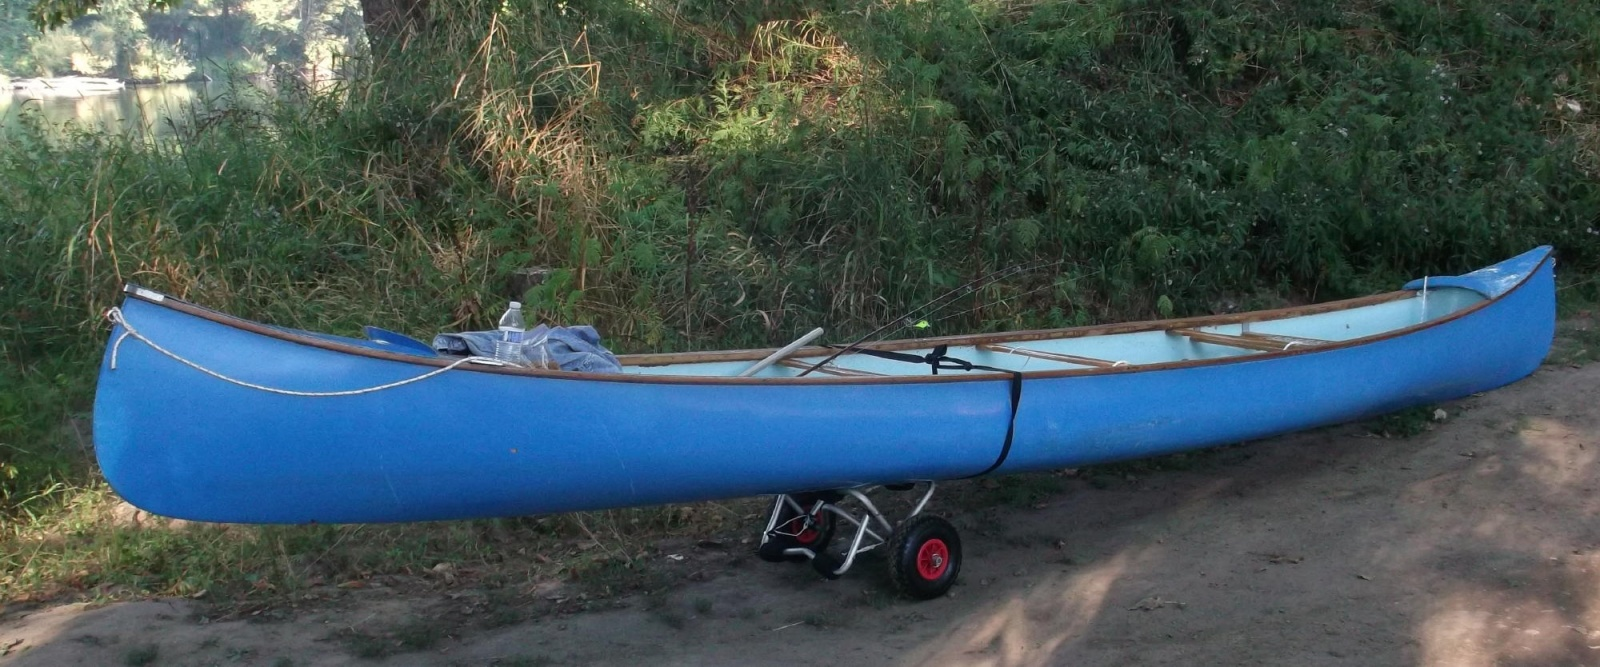 Click image for larger version  Name:canoe on wheels.jpg Views:117 Size:399.6 KB ID:66679